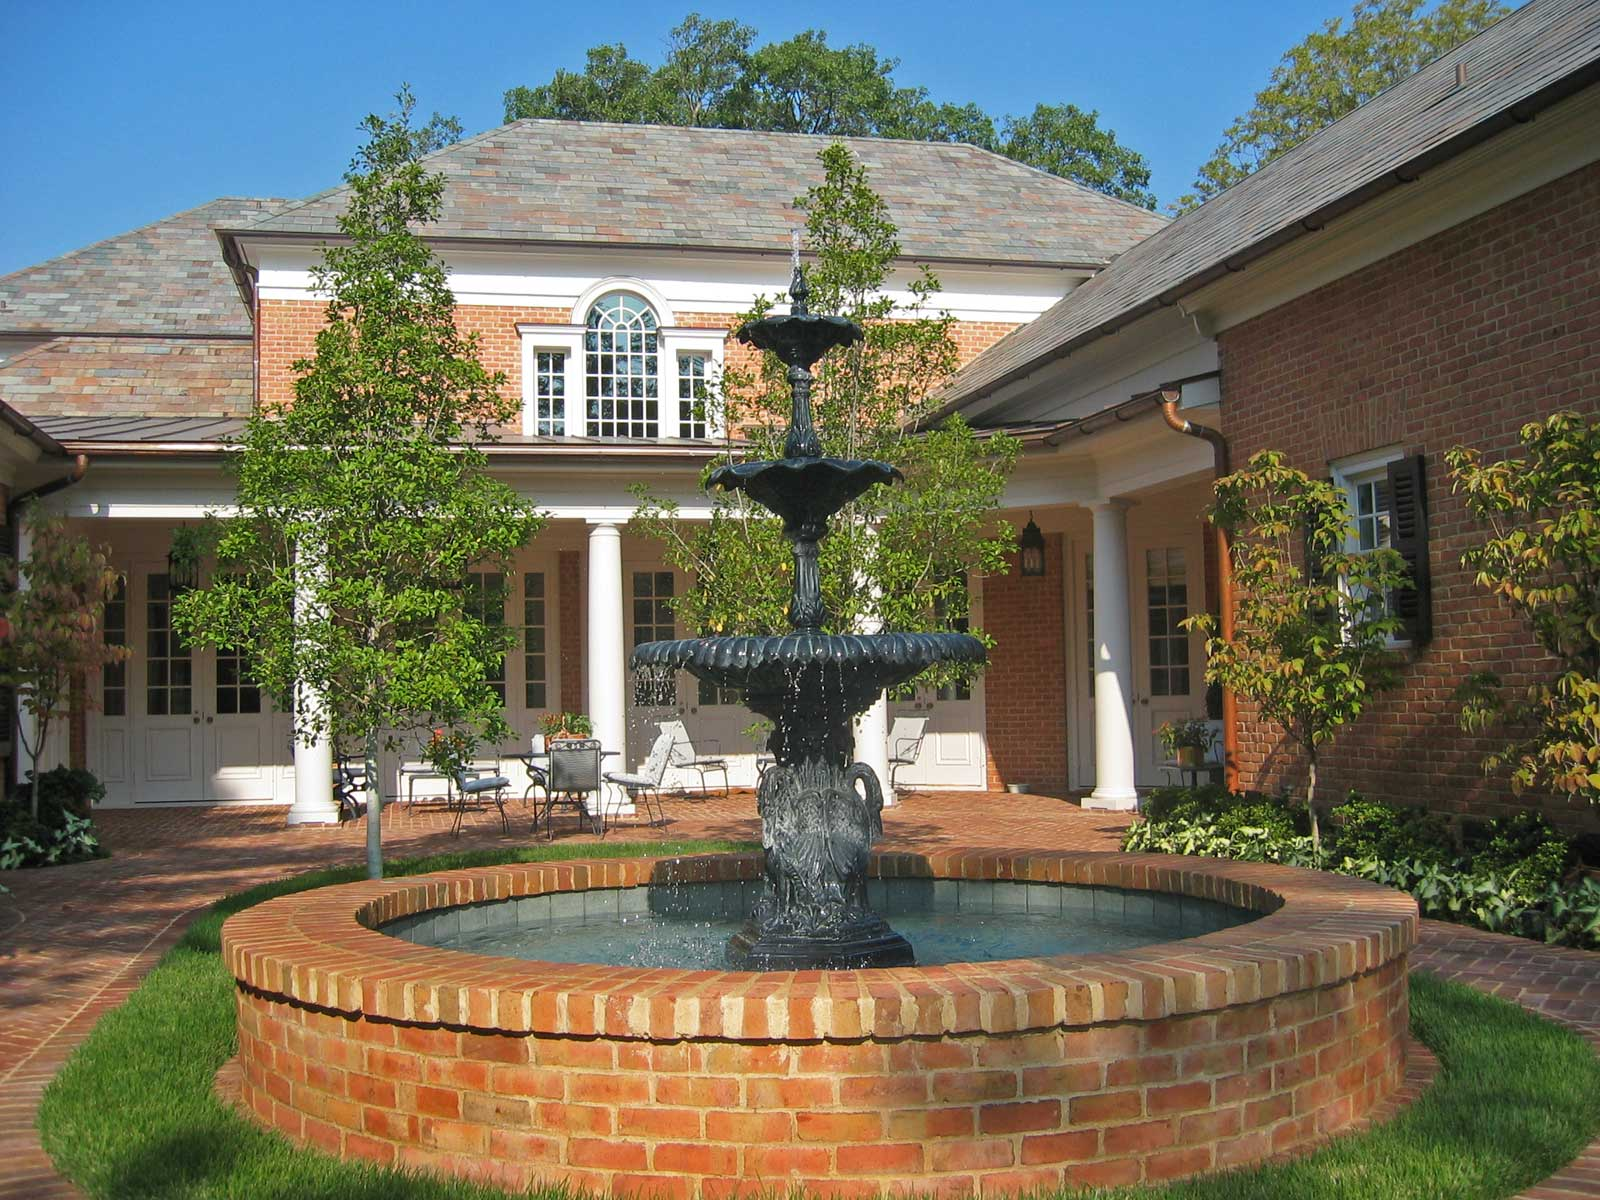 turtle-creek_fountain-&-garden1.jpg